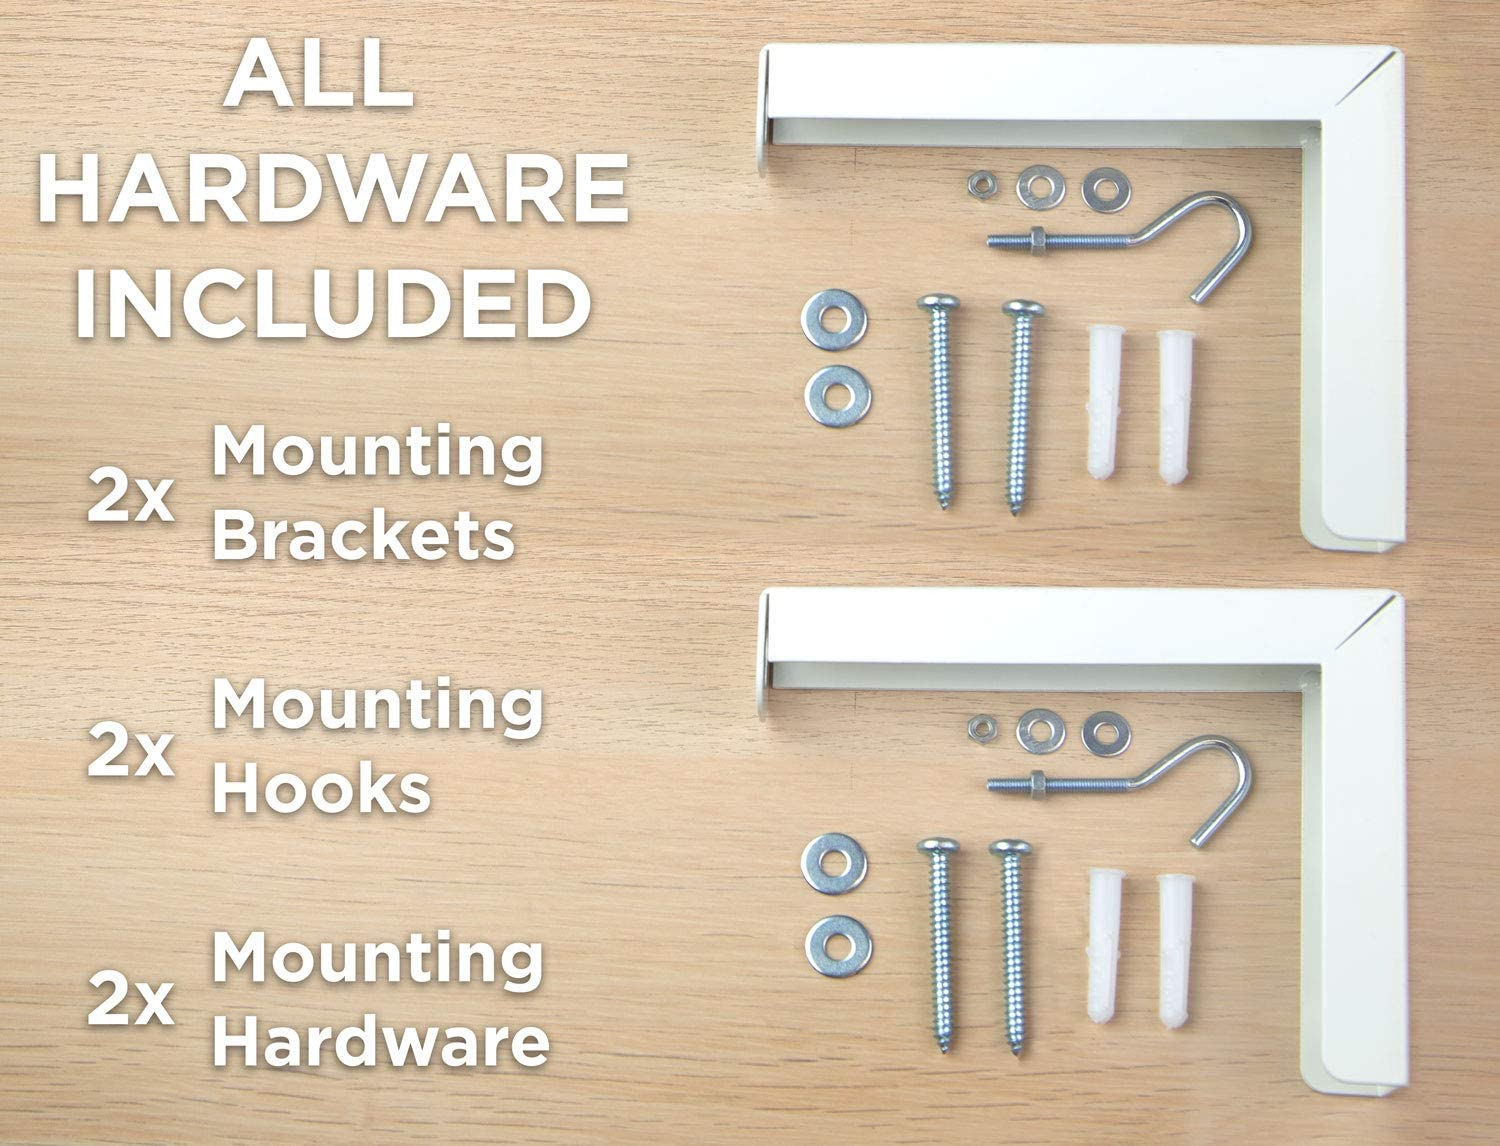 6 inch Adjustable Mounting Hooks for Projection Screen Mount-It White Projector Screen Wall Mount L-Brackets 66 Lb Capacity Each Wall Hanging Bracket For Home Projector and Movie Screens 1 Pair